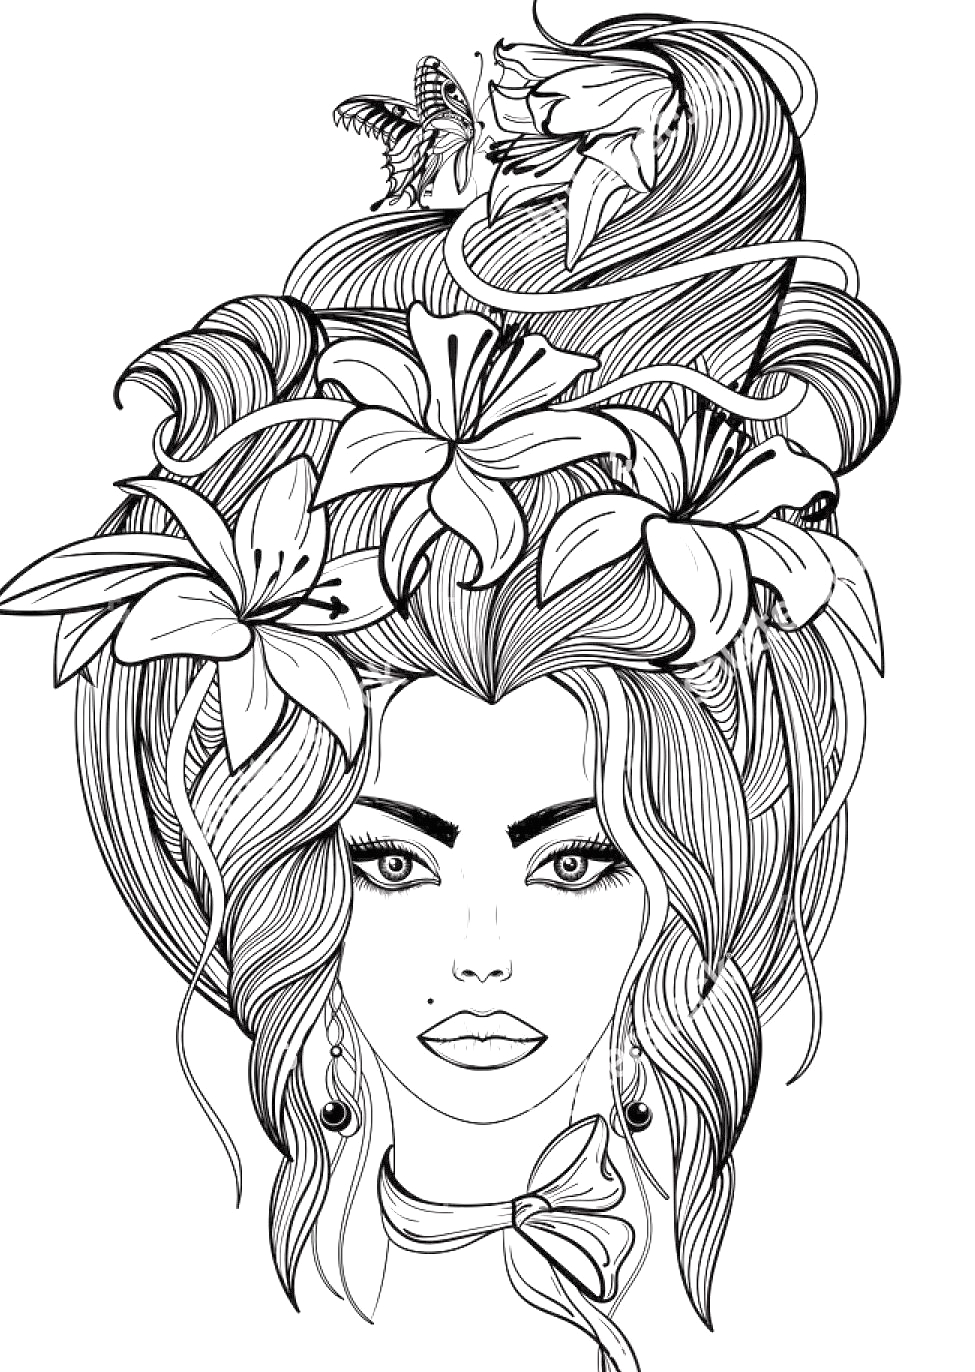 Coloring Pages Of Girls with Long Hair 40 Cute Long Hair Realistic Girl Coloring Pages